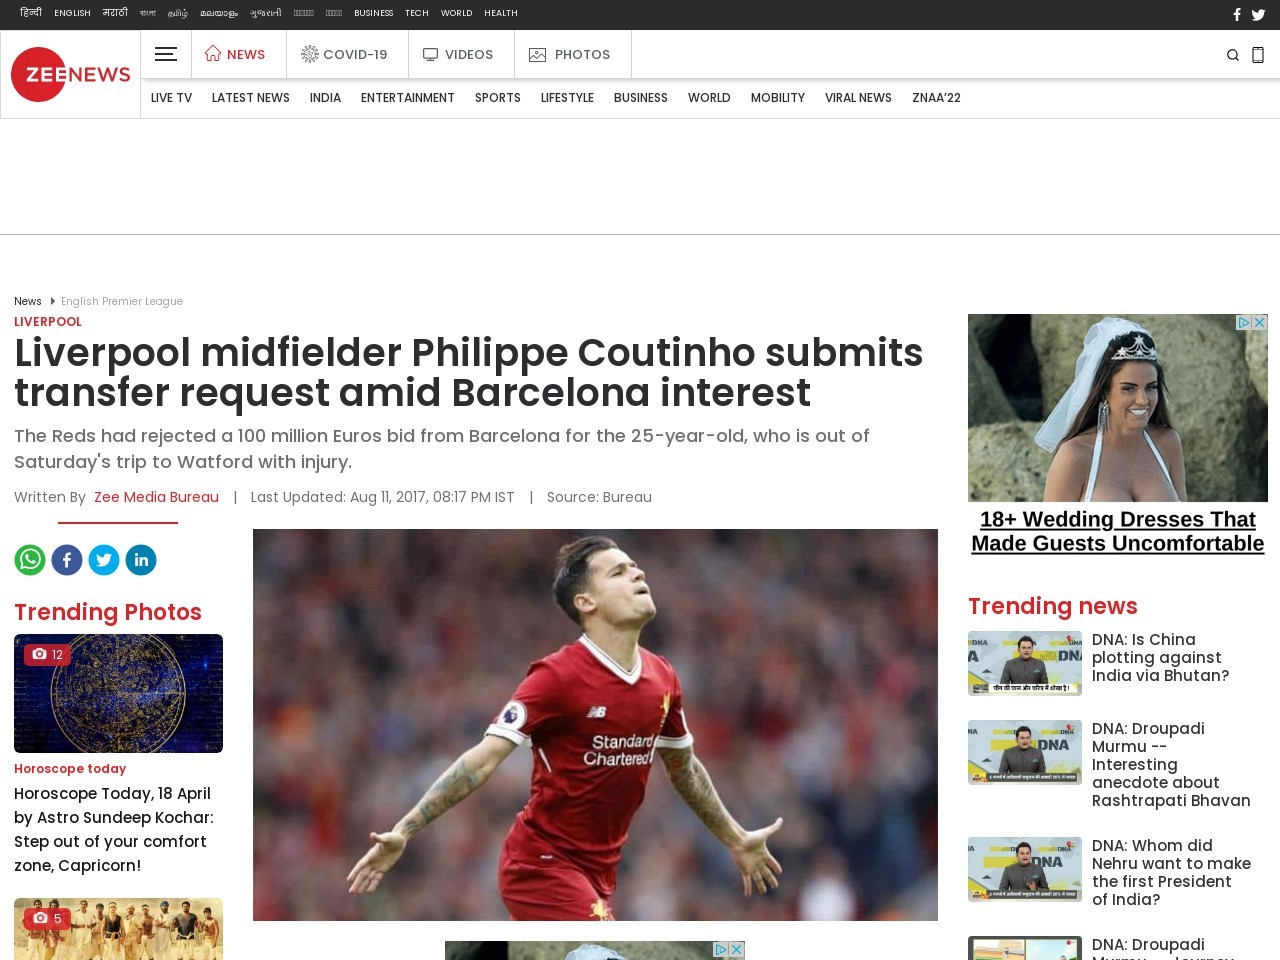 Liverpool midfielder Philippe Coutinho submits transfer request amid Barcelona interest